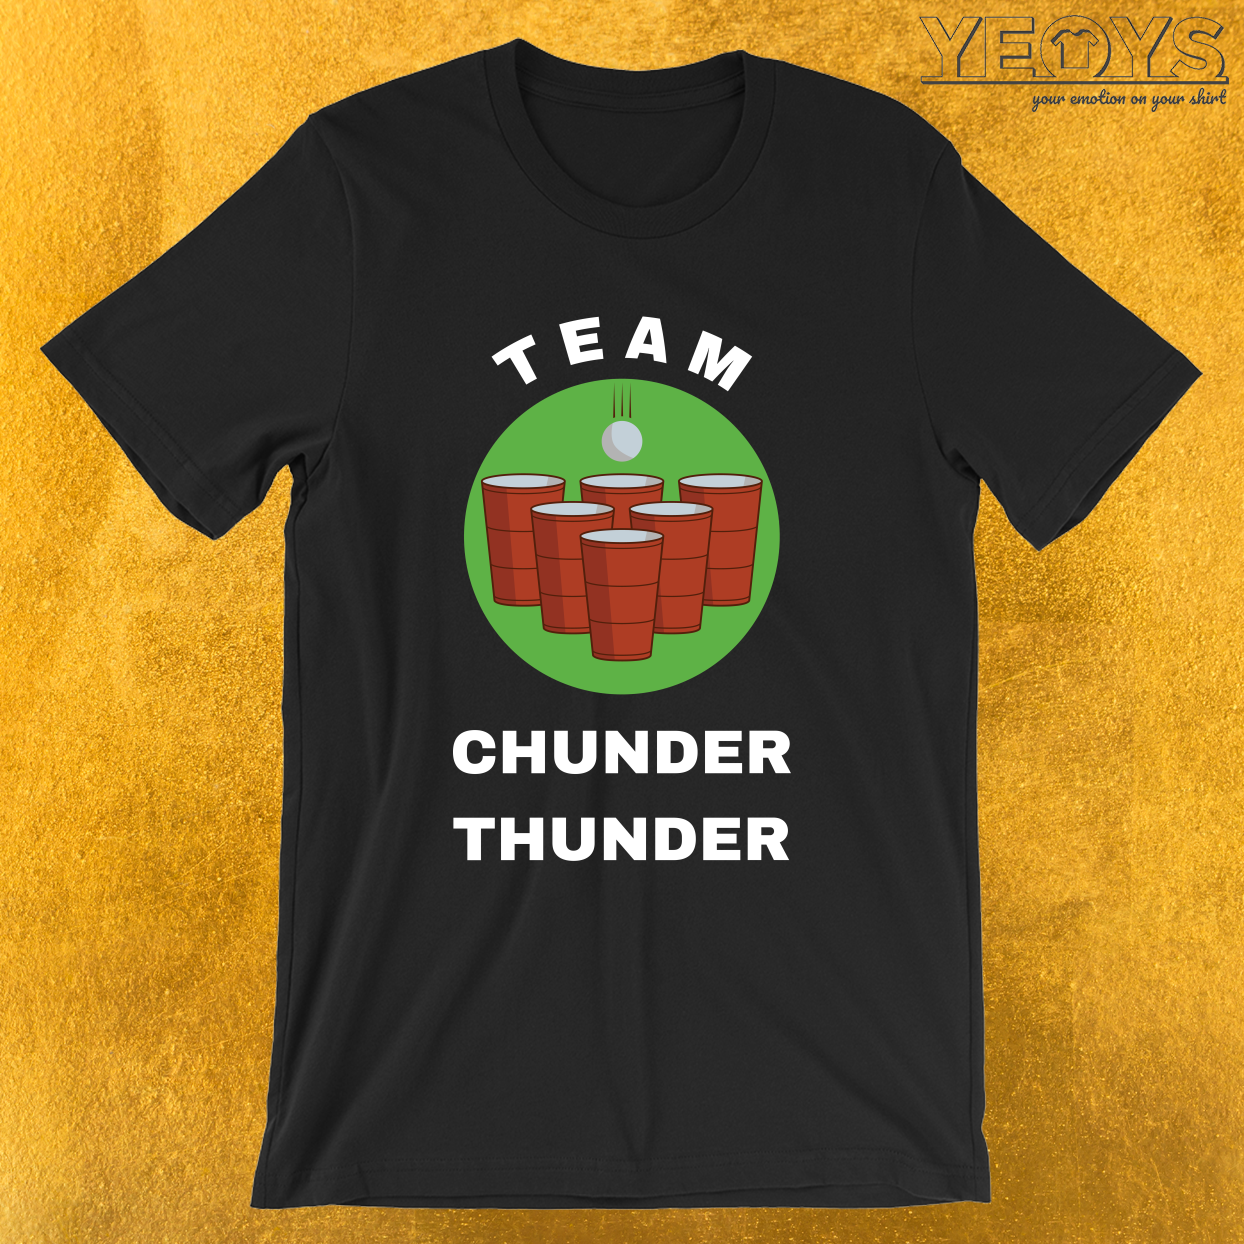 Team Chunder Thunder – USA Beer Pong Team Tee